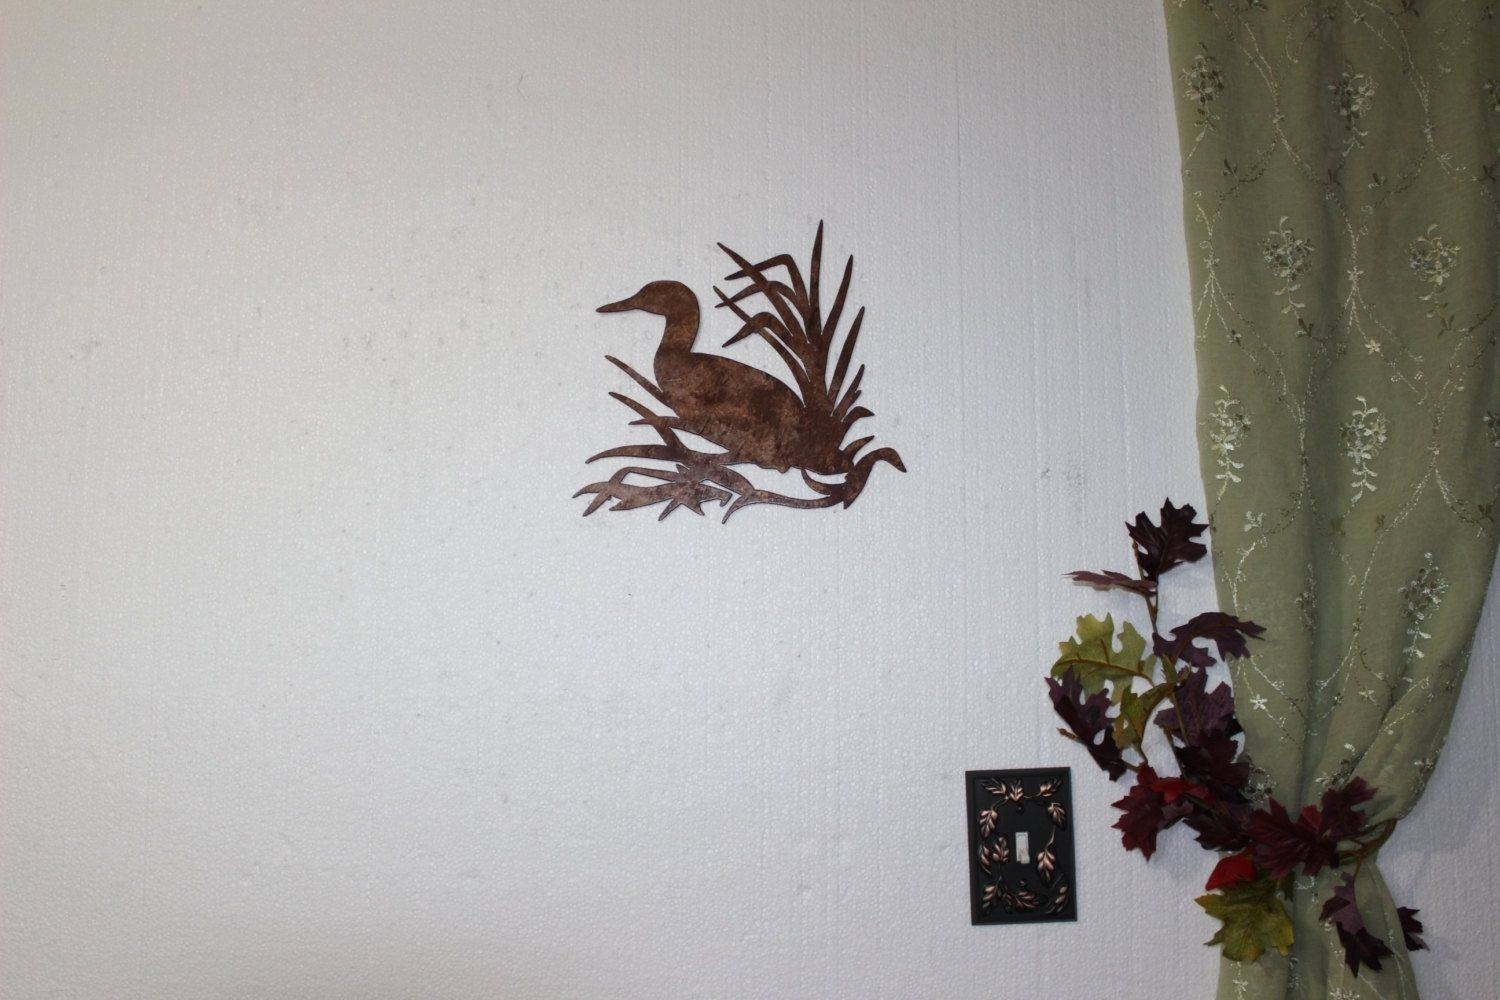 Hand Made Duck In Reeds On Sawblade Metal Wall Art Country Rustic With Regard To Latest Country Metal Wall Art (View 8 of 30)